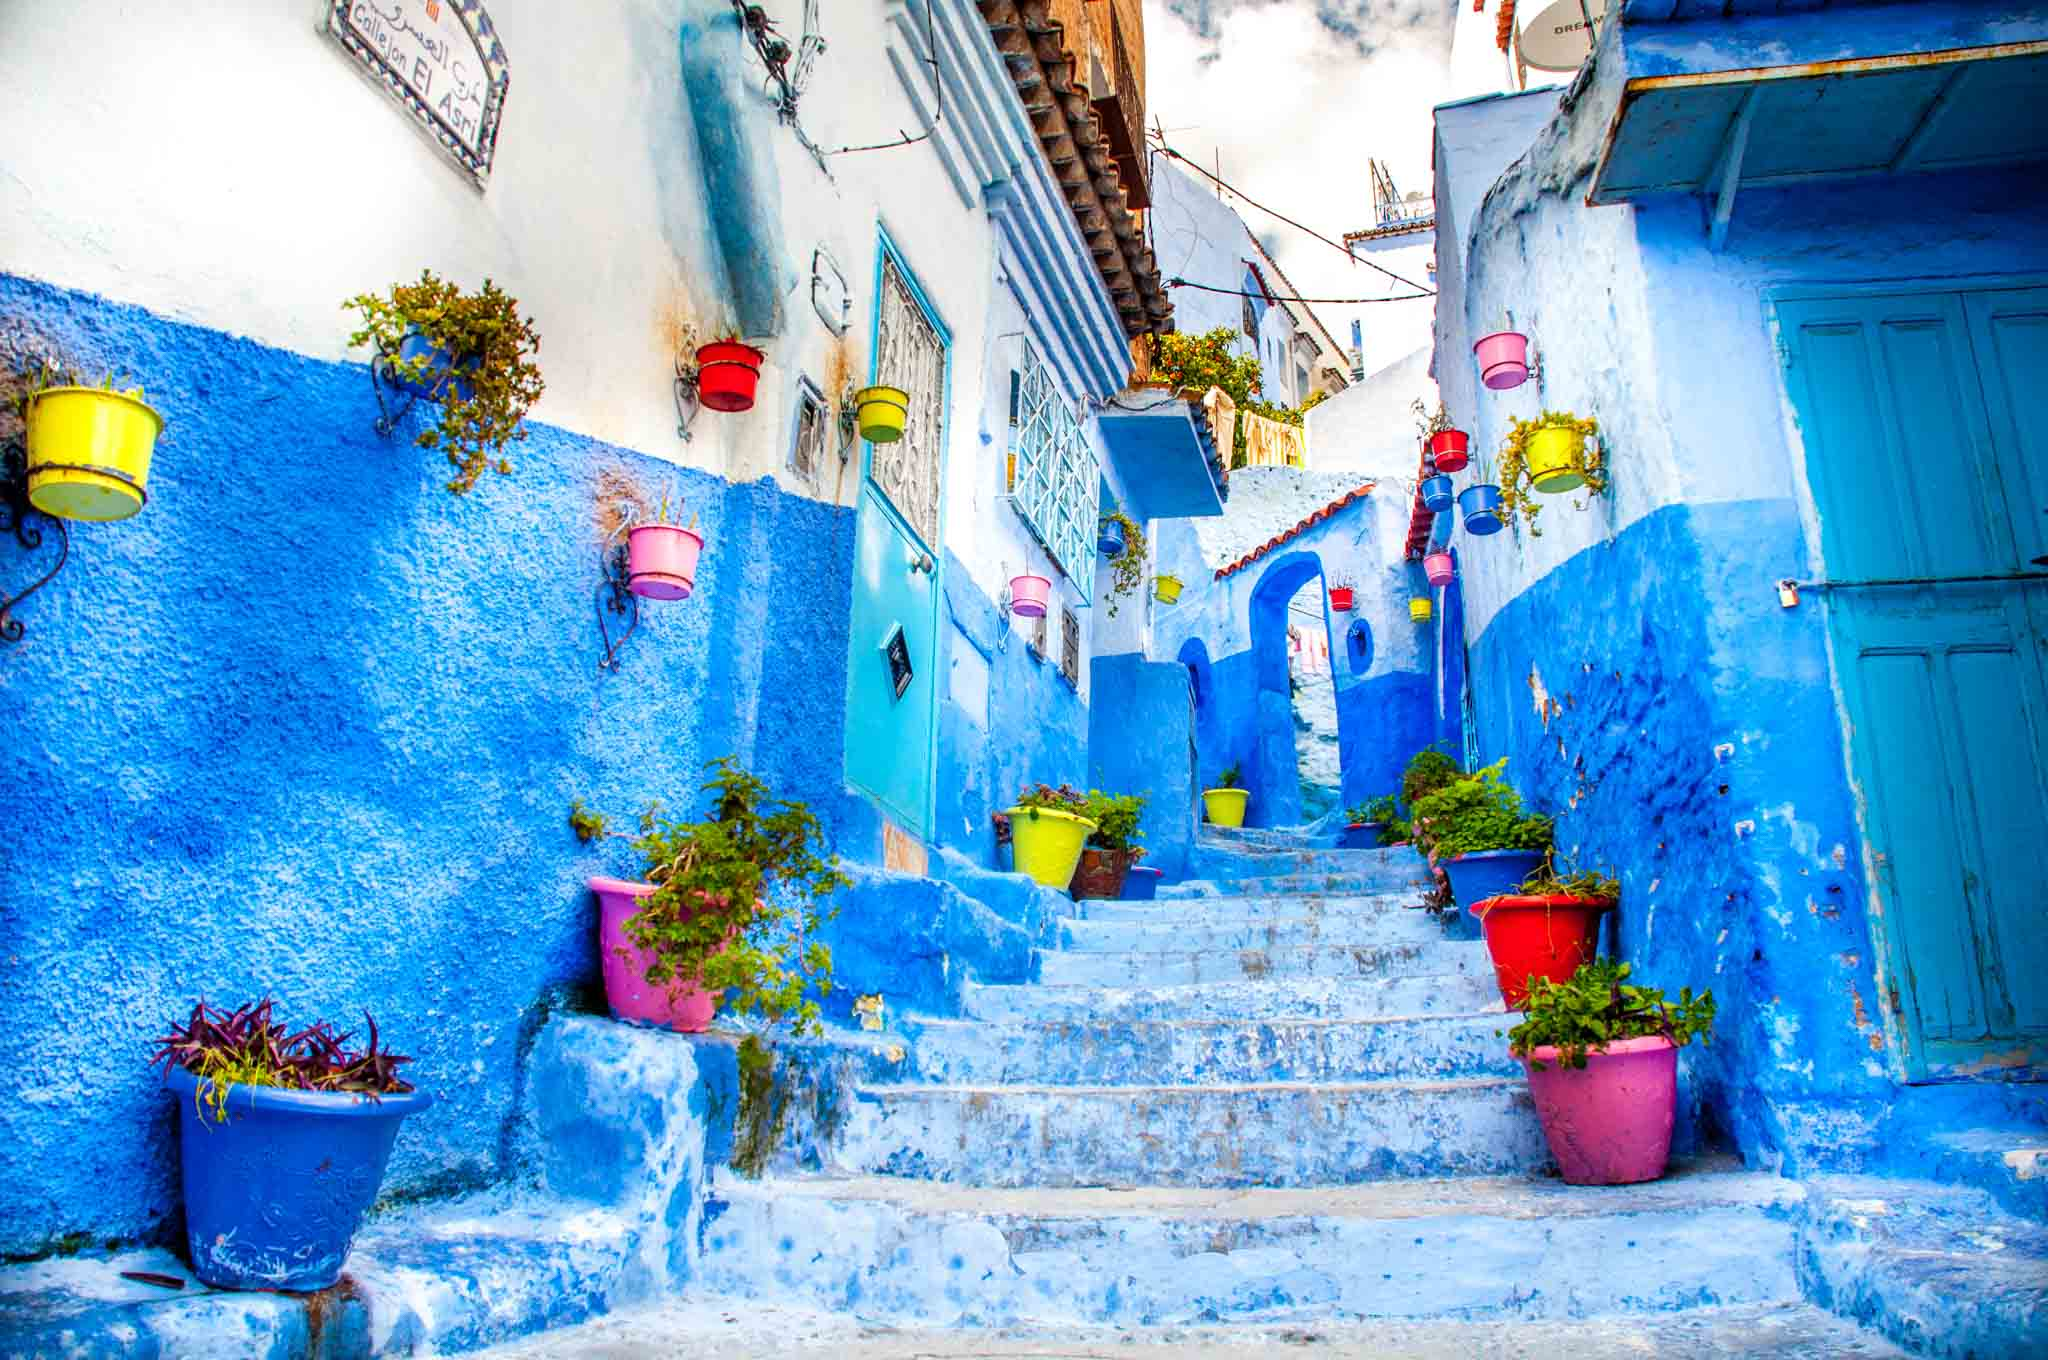 Morocco travel is full of highlights like the blue city, Chefchaouen